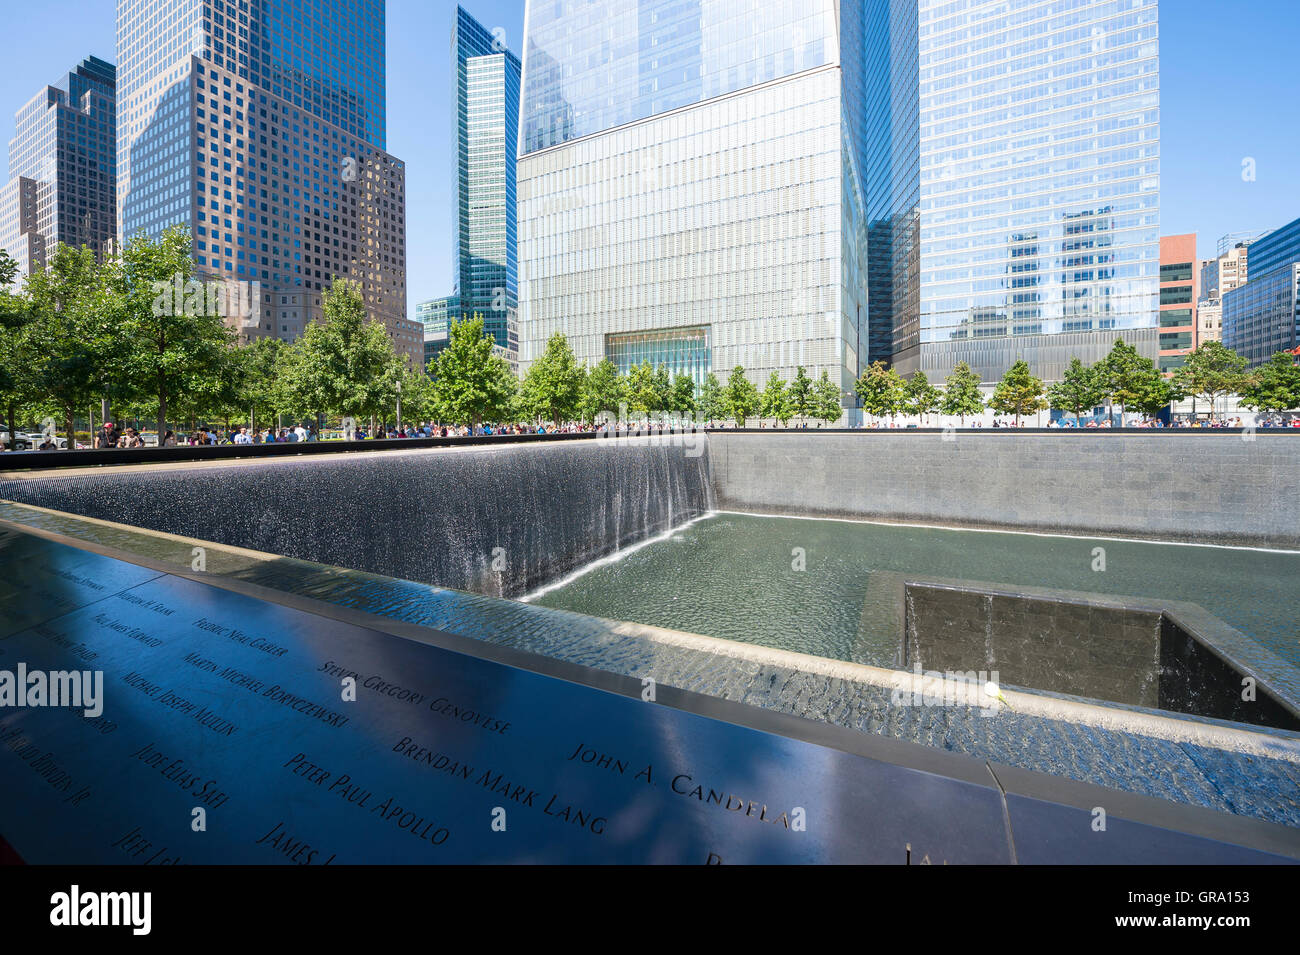 NEW YORK CITY - SEPTEMBER 4, 2016: Names of victims surround the North Pool of the National September 11 Memorial. - Stock Image